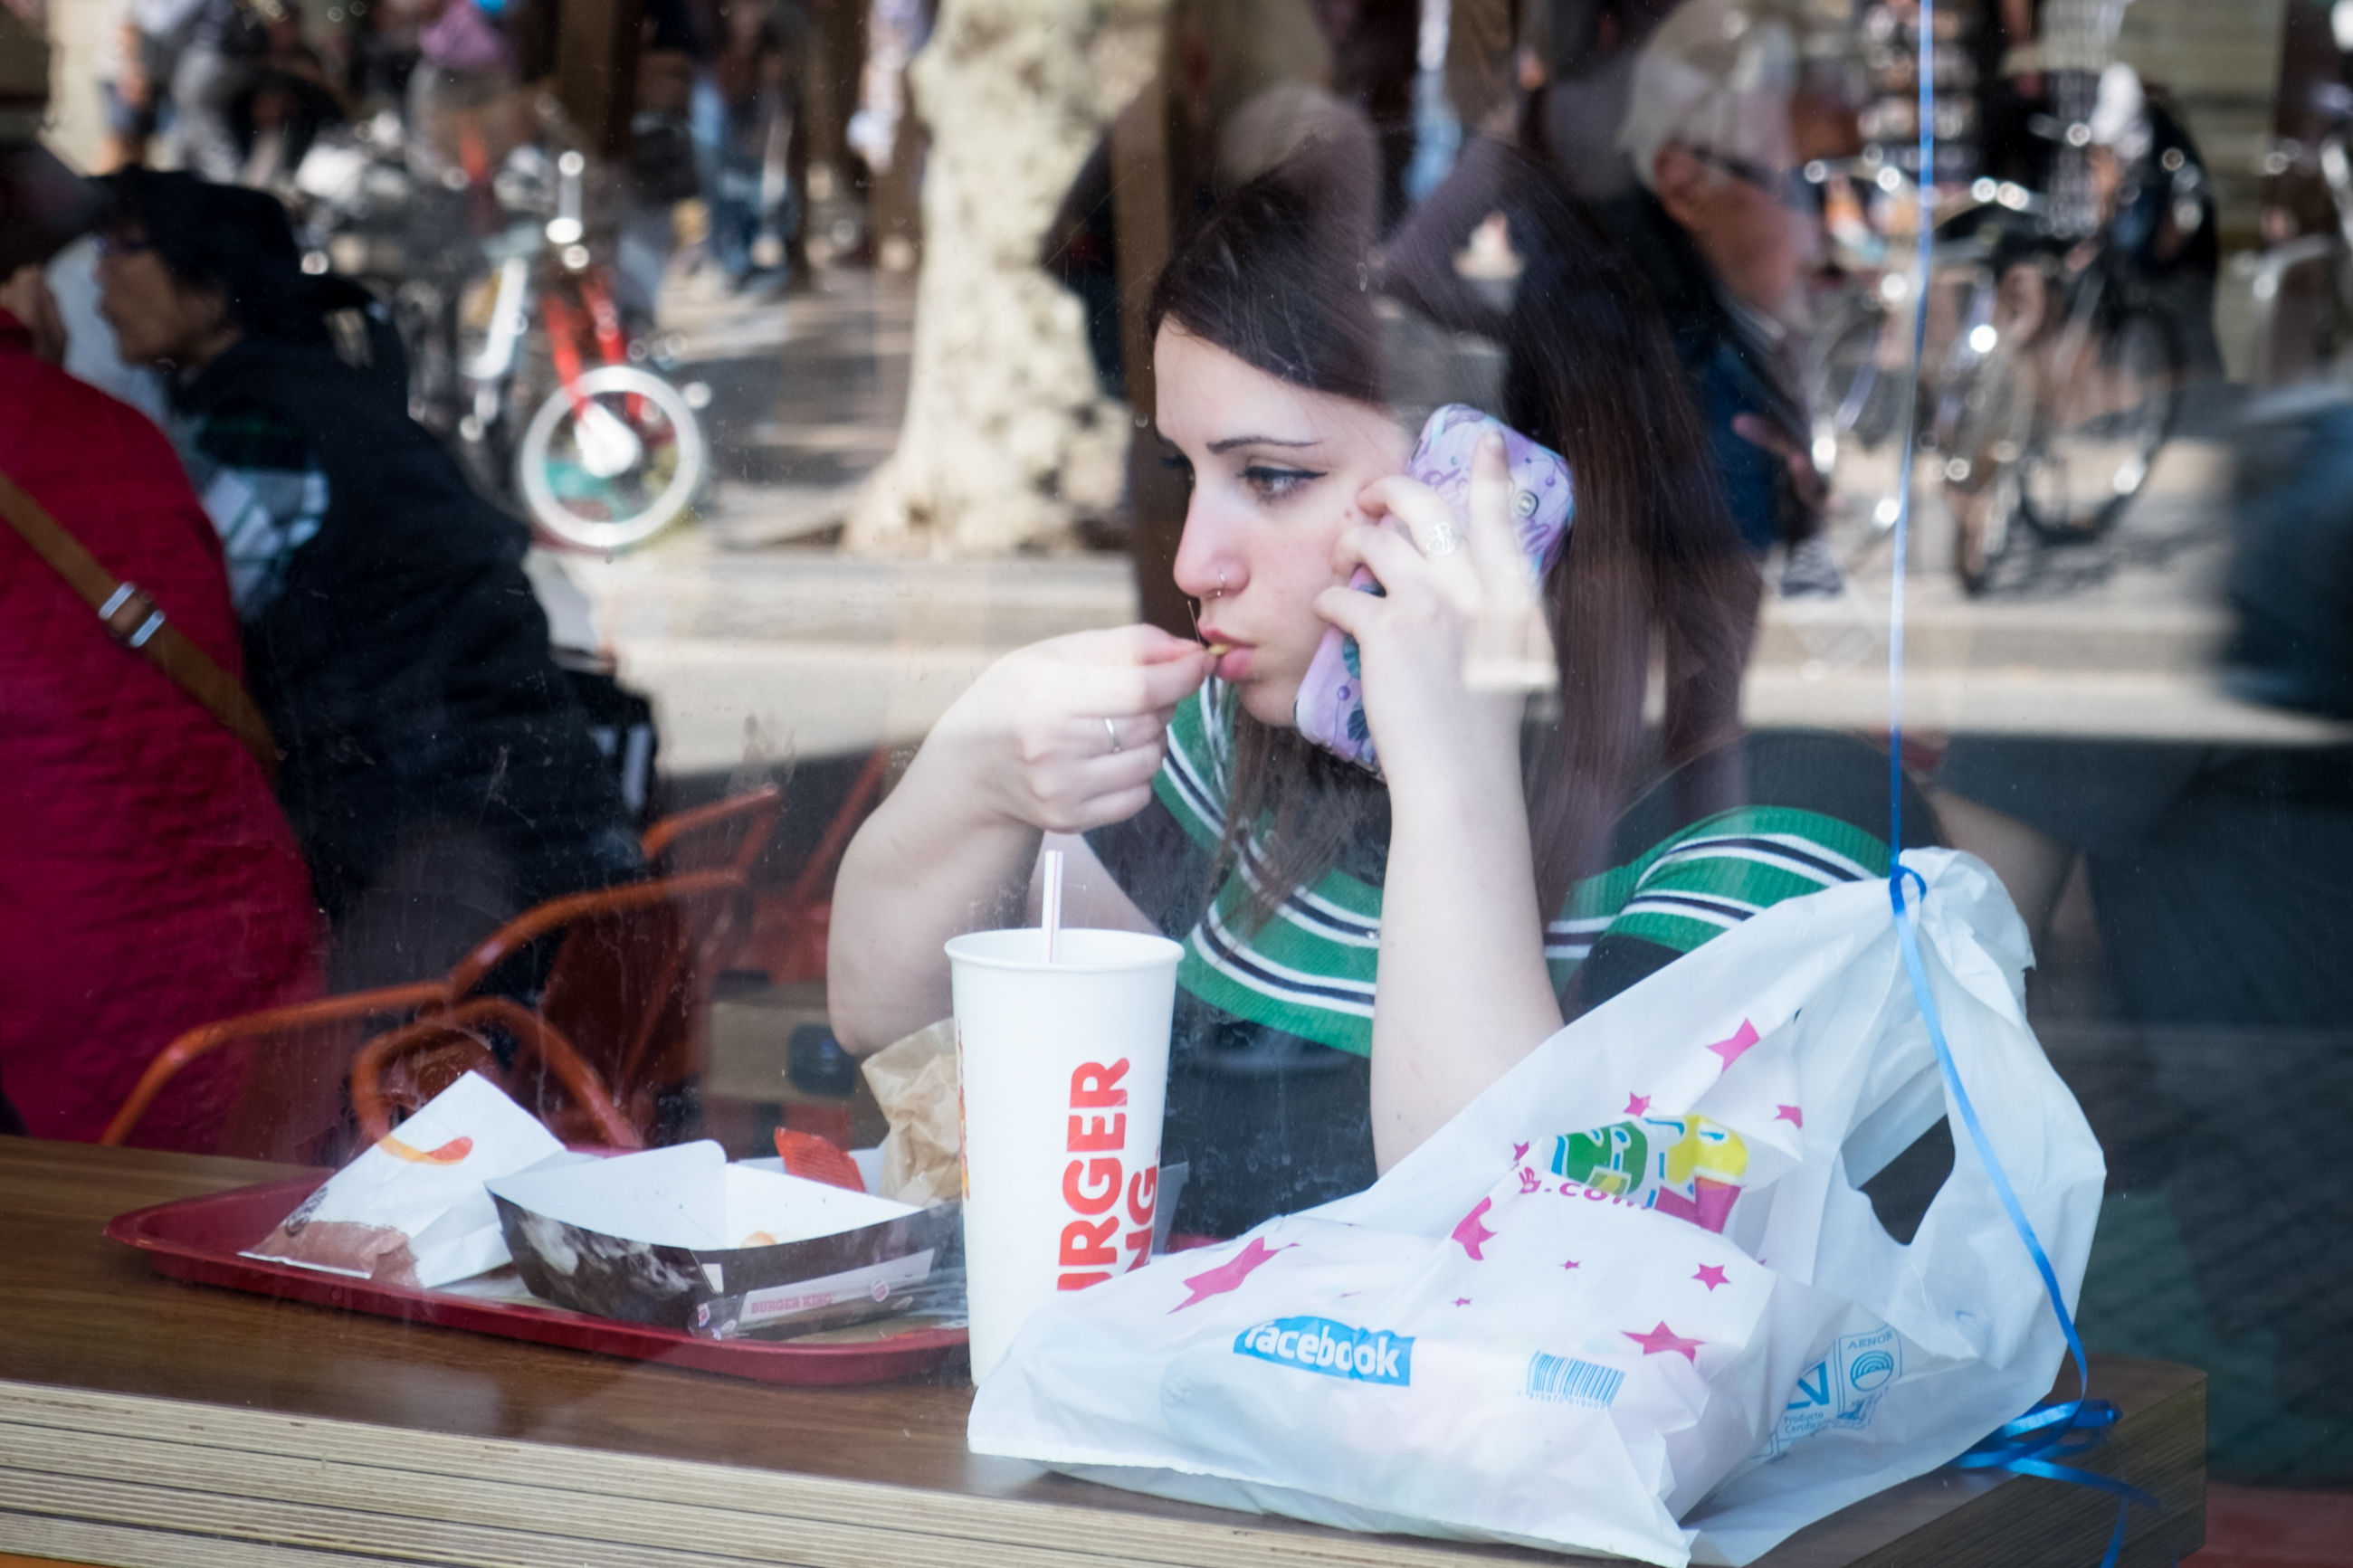 table, young adult, incidental people, sitting, one person, food and drink, real people, women, drink, young women, waist up, business, holding, looking, leisure activity, lifestyles, adult, portrait, drinking, outdoors